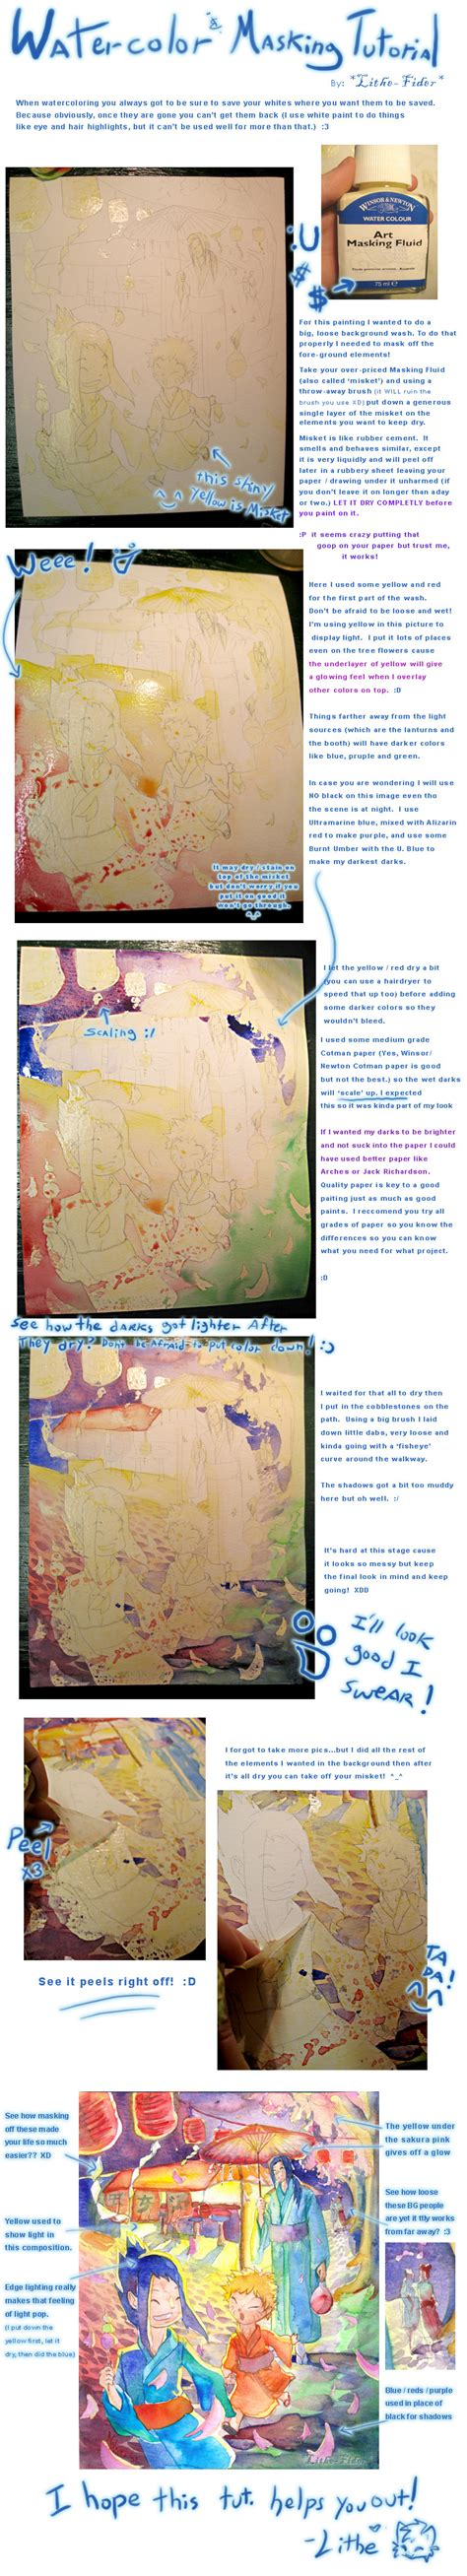 watercolor masking tutorial watercolor masking tutorial by lithe fider on deviantart